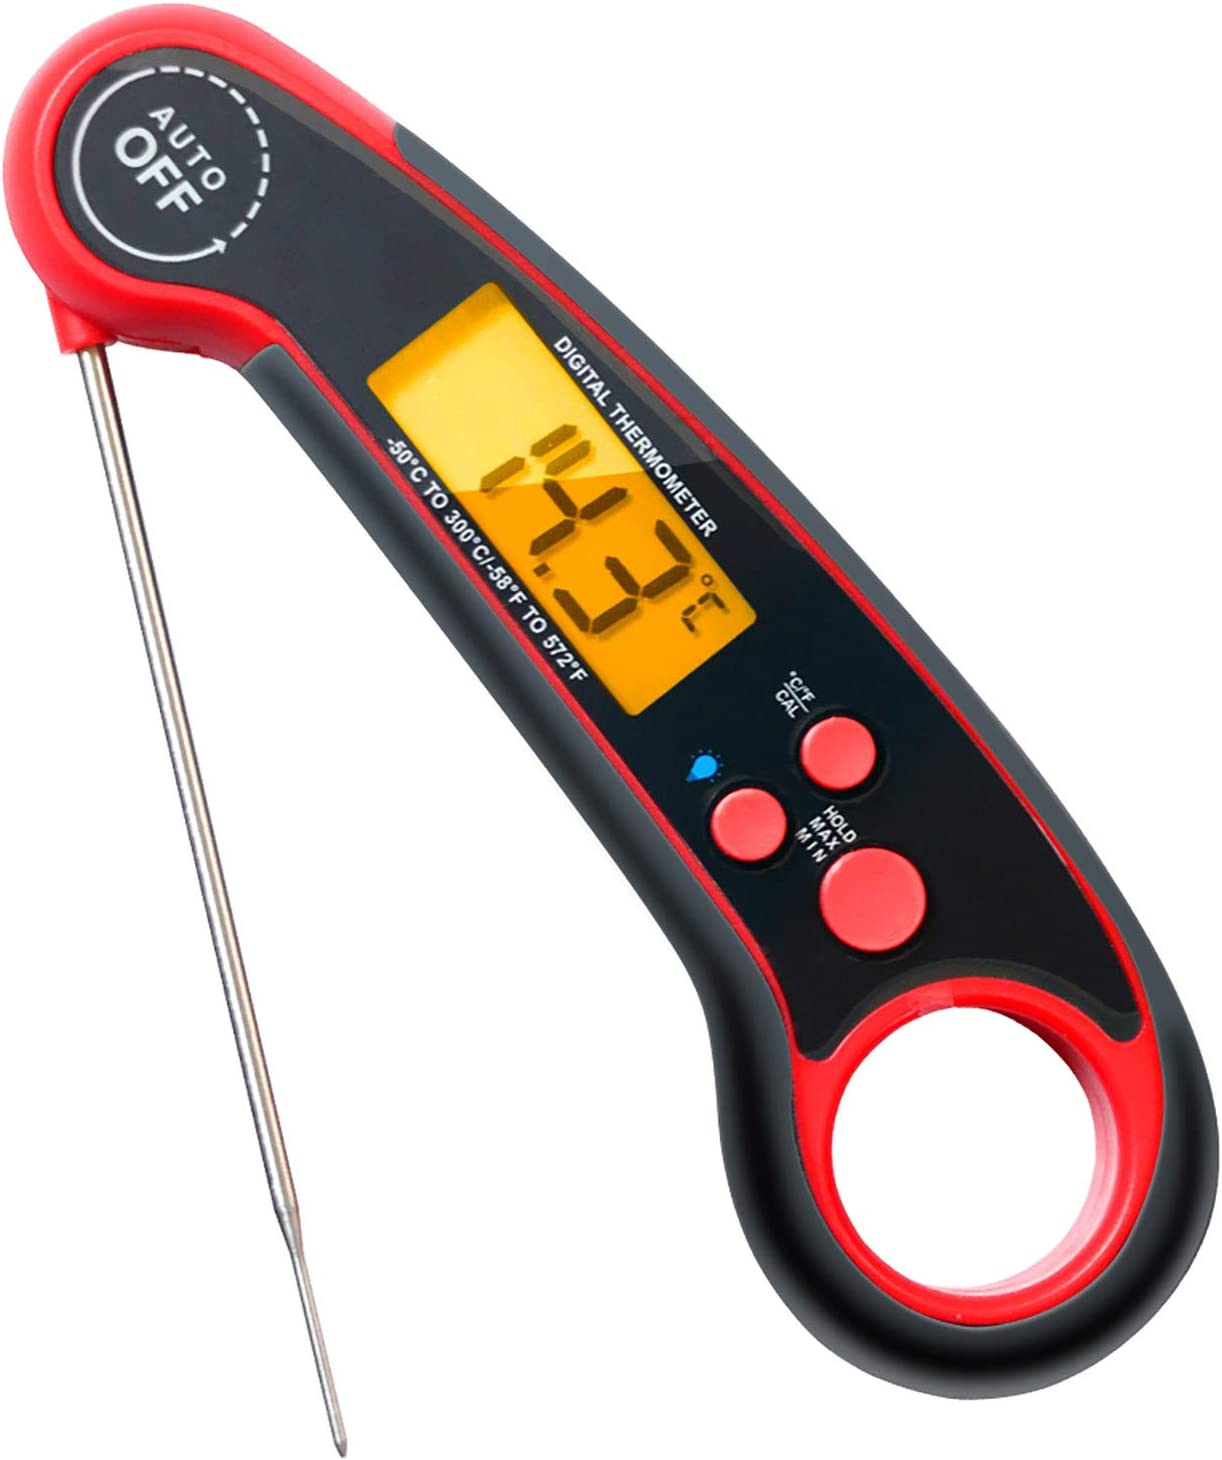 Meat Thermometer Estefanlo Magnet Read Instant Al sold out. Minneapolis Mall Therm Adsorption